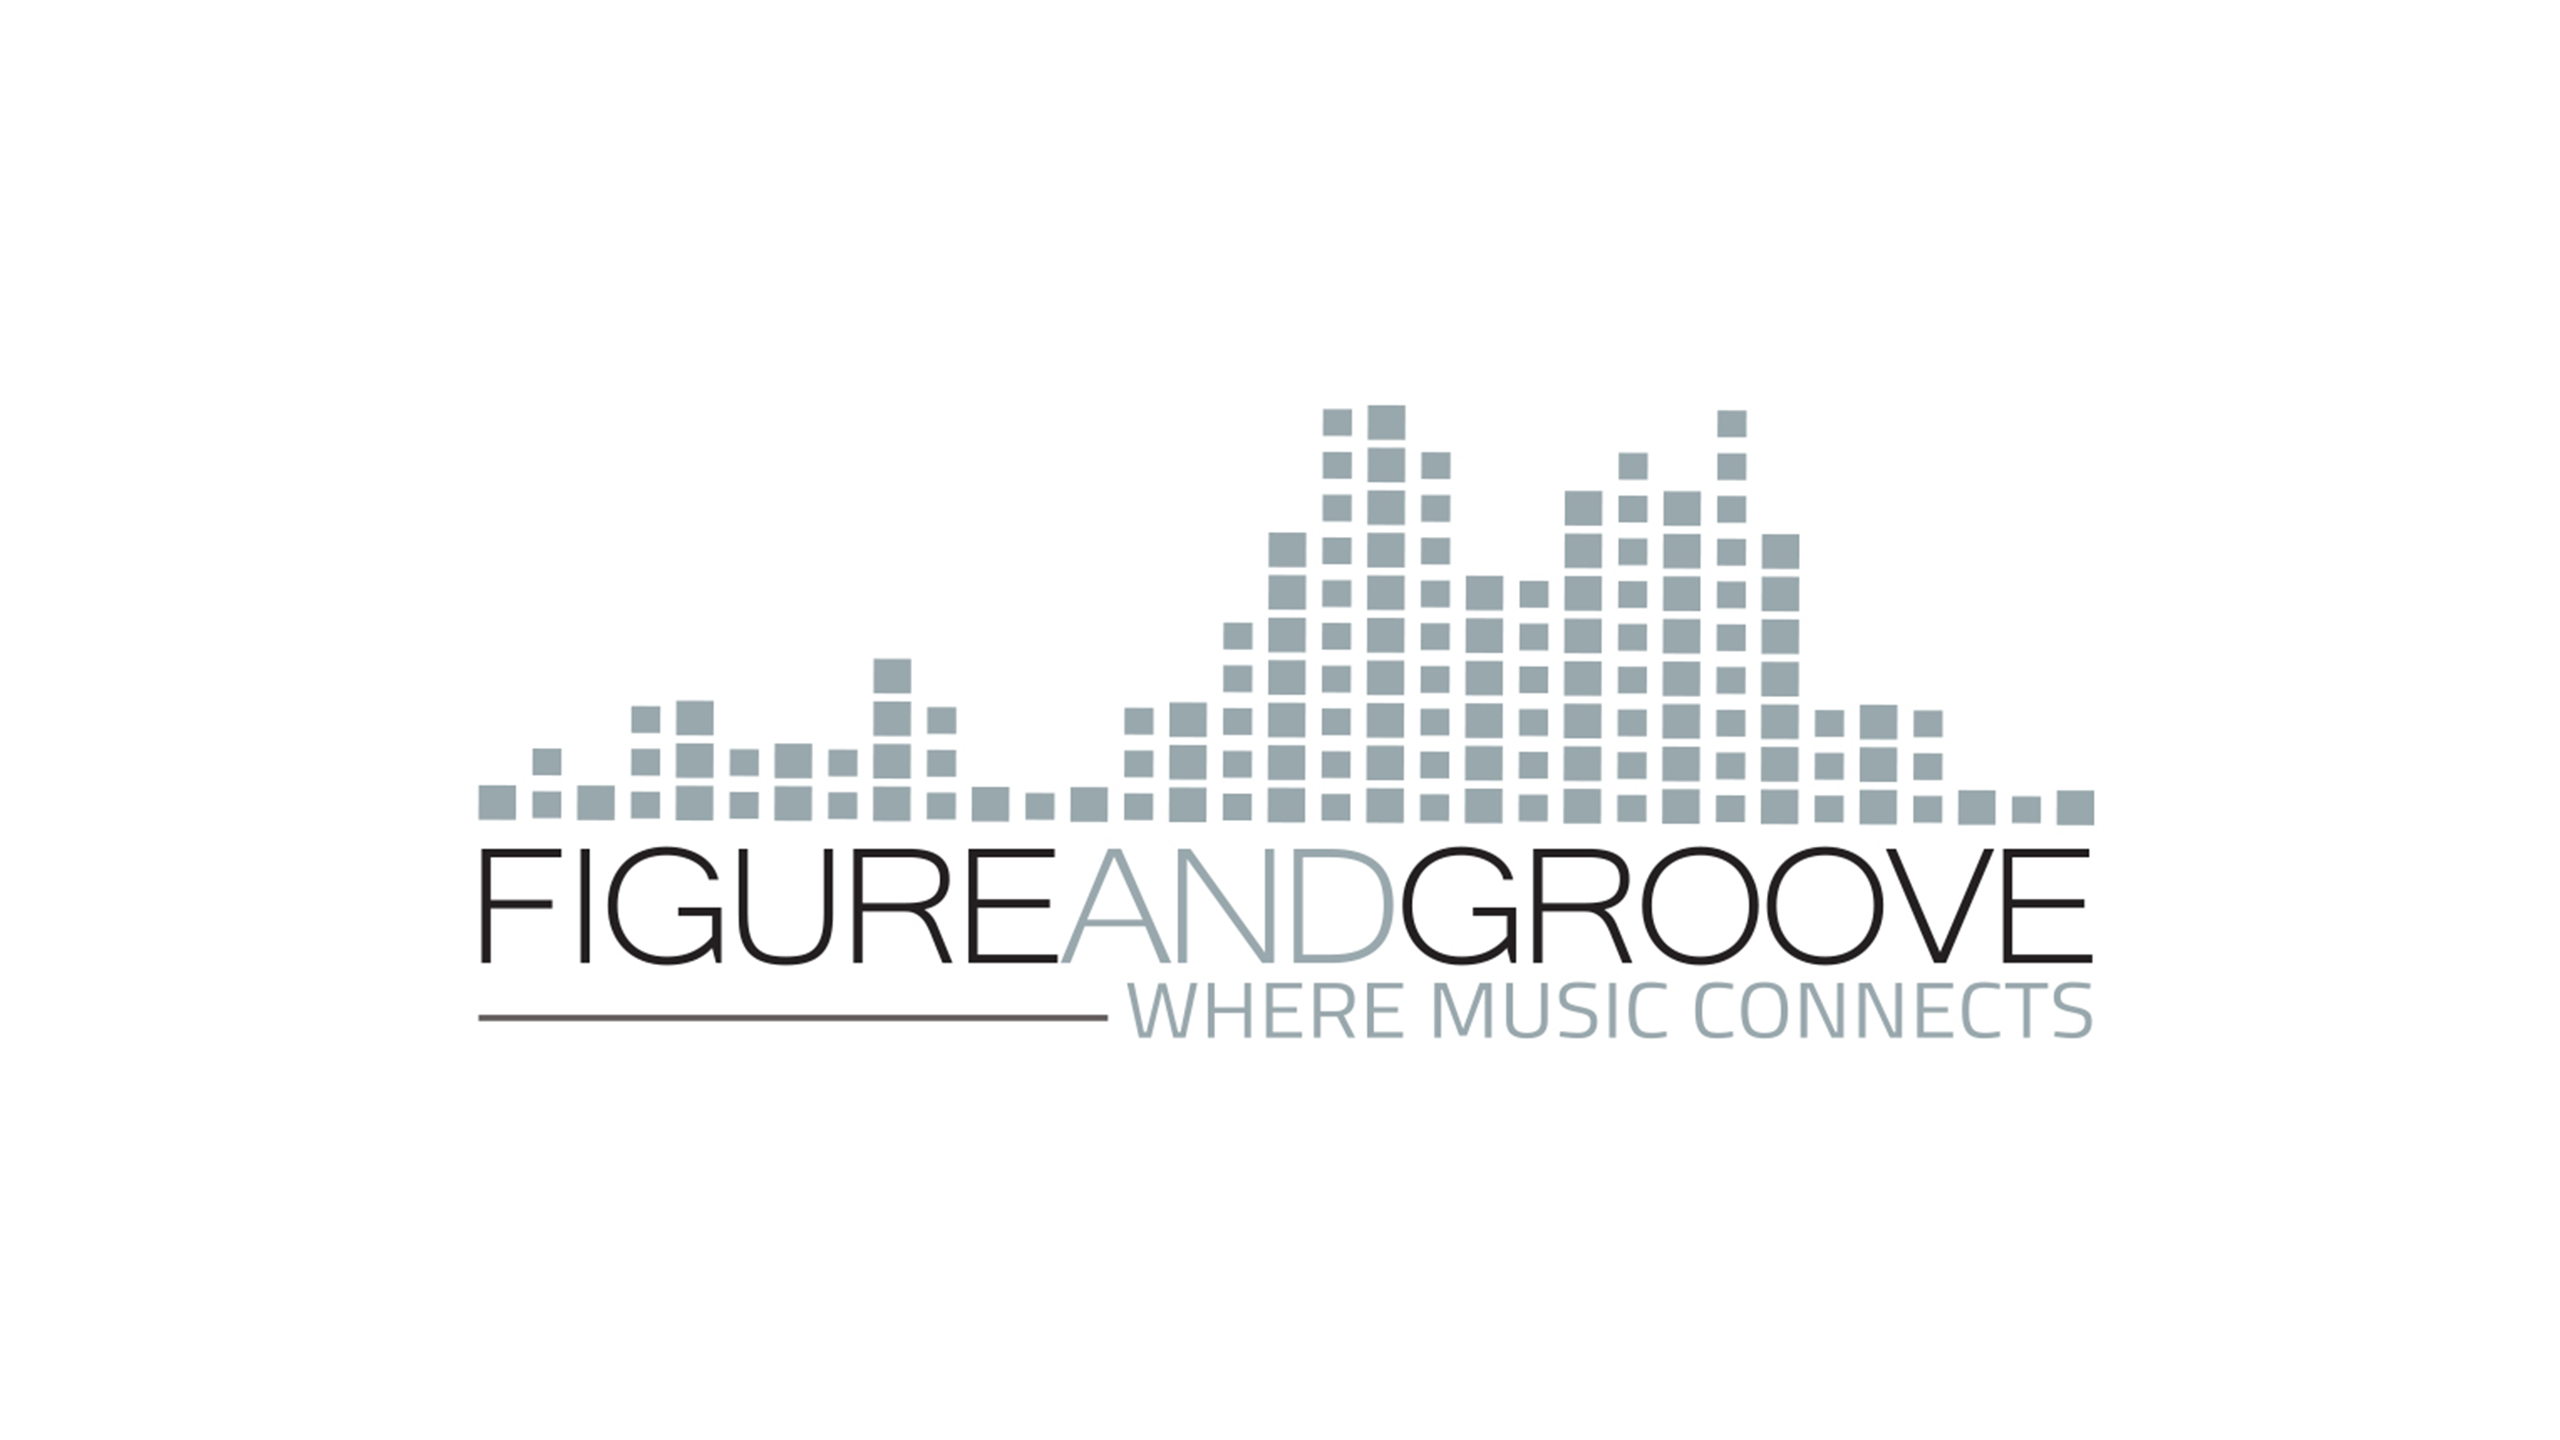 Figure and groove logo